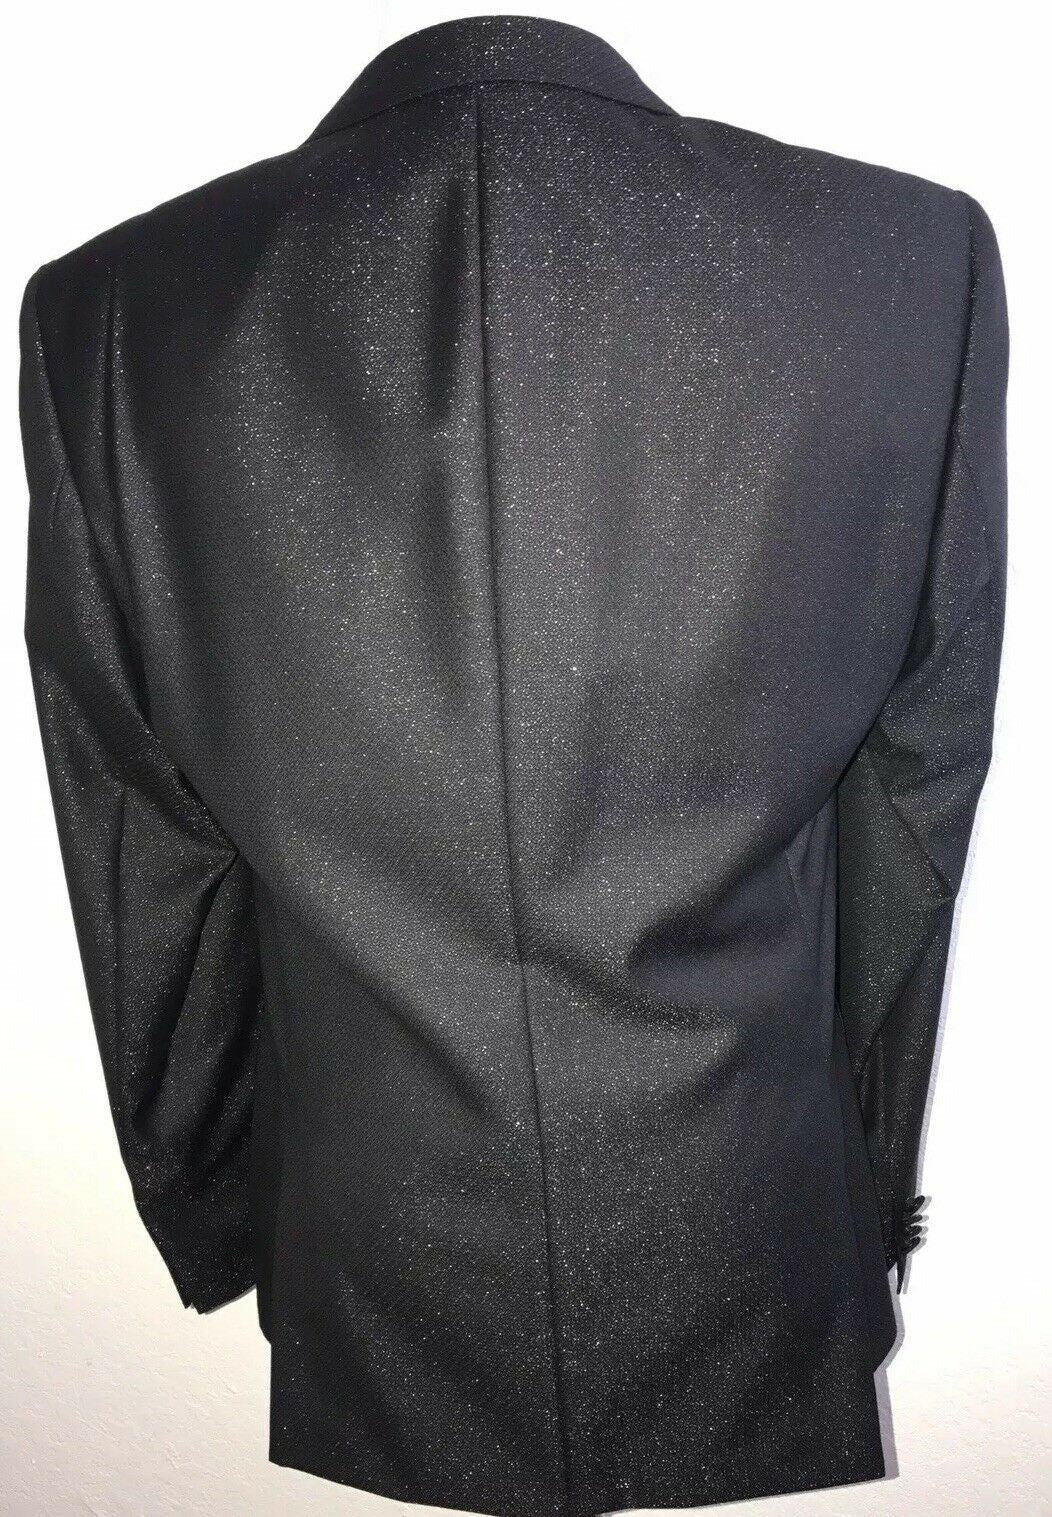 NWT $795 Boss Hugo Boss Hayford Tuxedo Sport Coat Jacket Black 40R US (50R Eu)